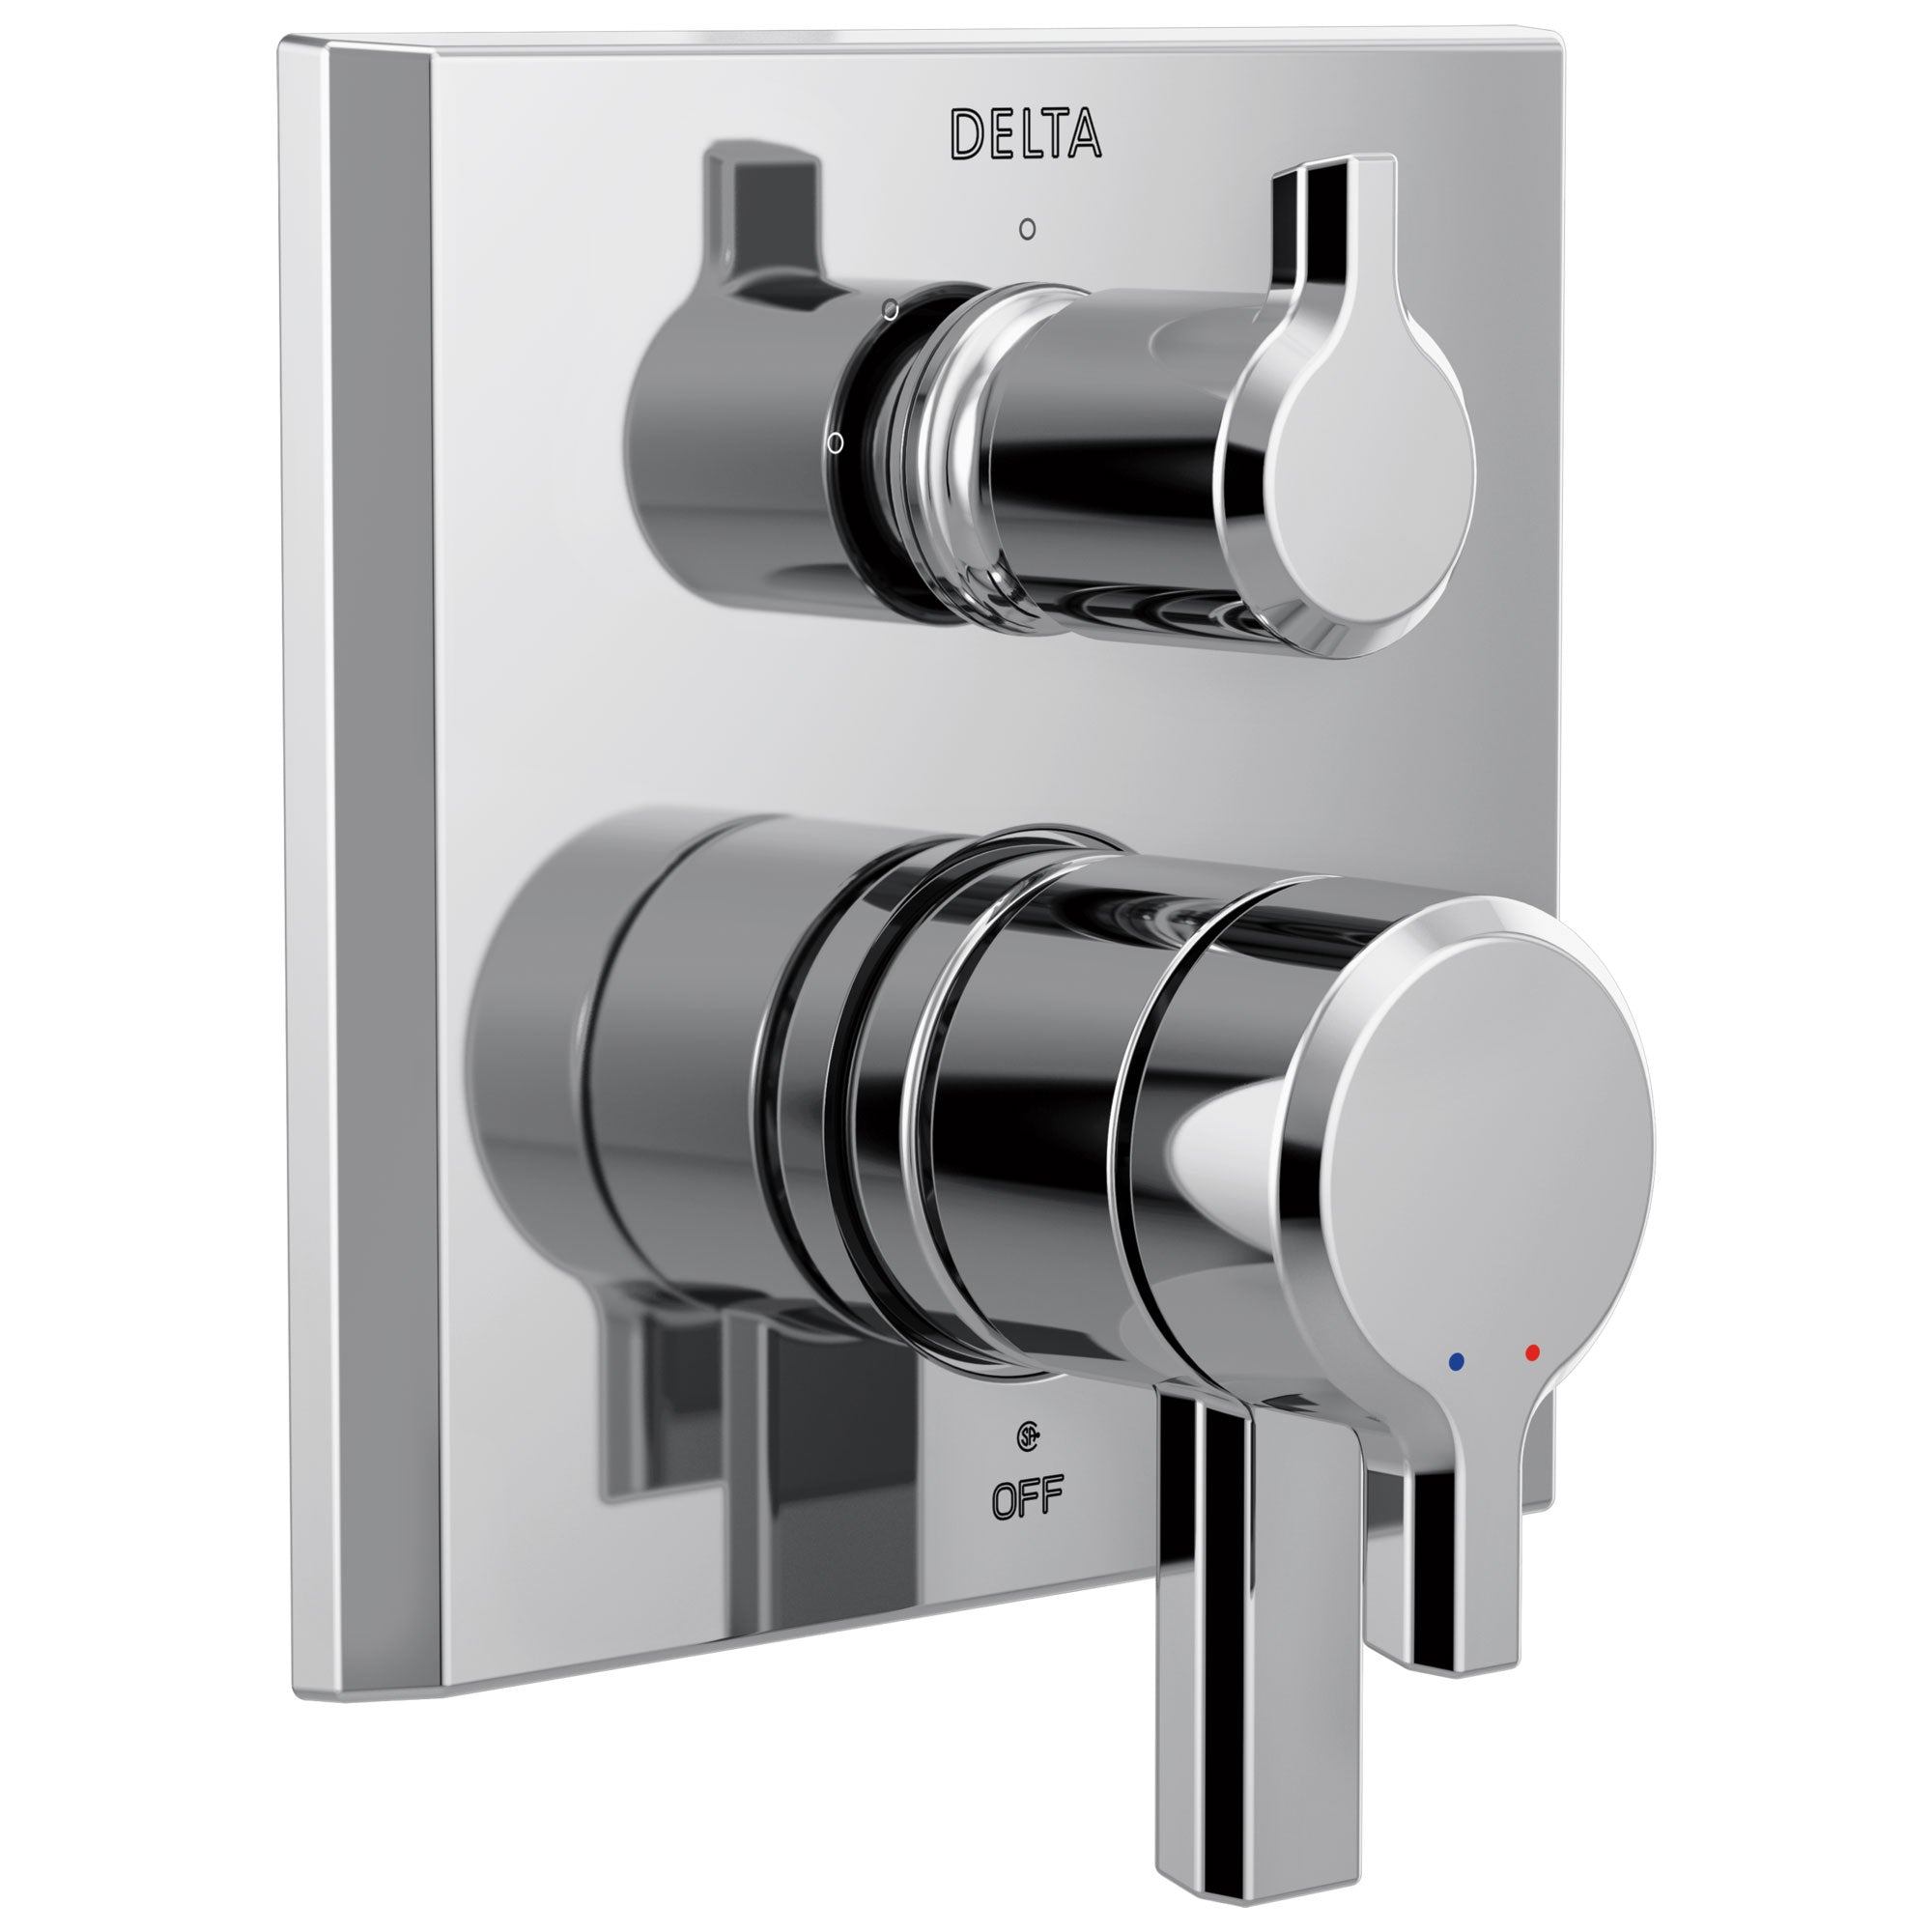 Delta Pivotal Chrome Finish Monitor 17 Series Shower System Control with 3-Setting Diverter Includes Rough-in Valve and Handles D3720V